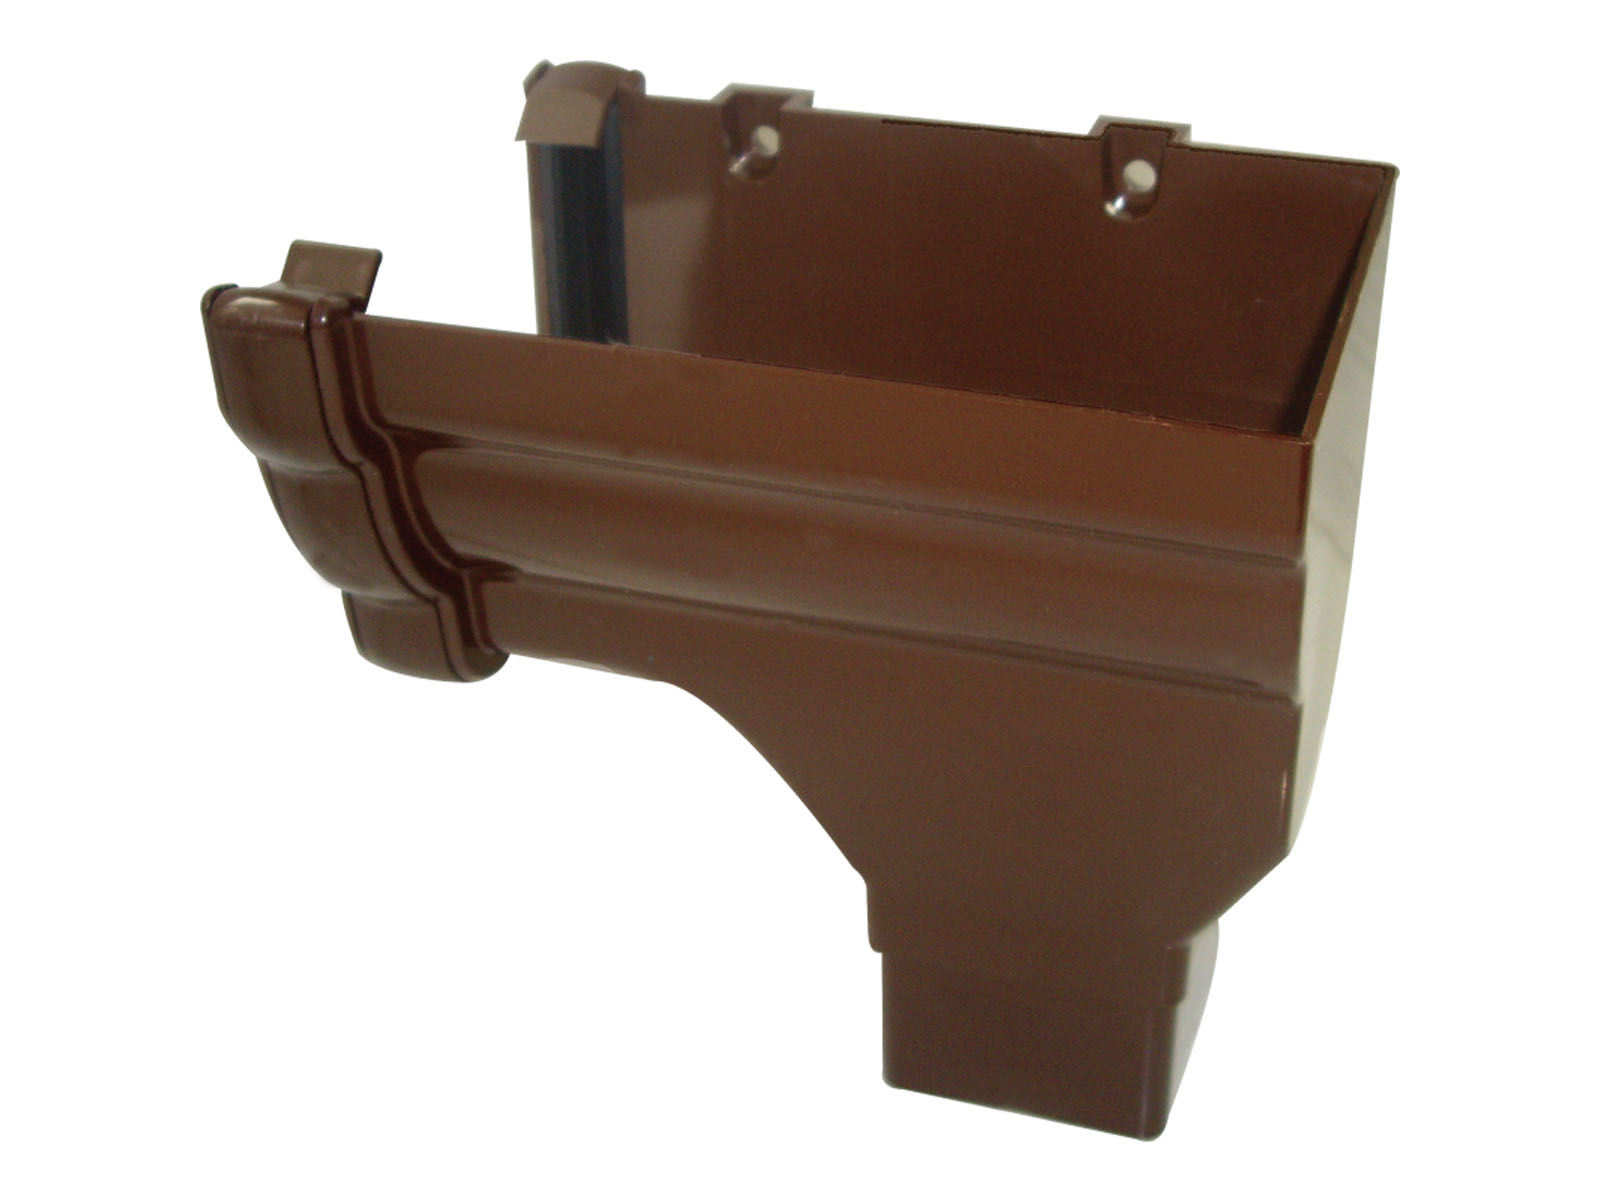 FLOPLAST NIAGARA - RON3 R/H STOPEND OUTLET - BROWN